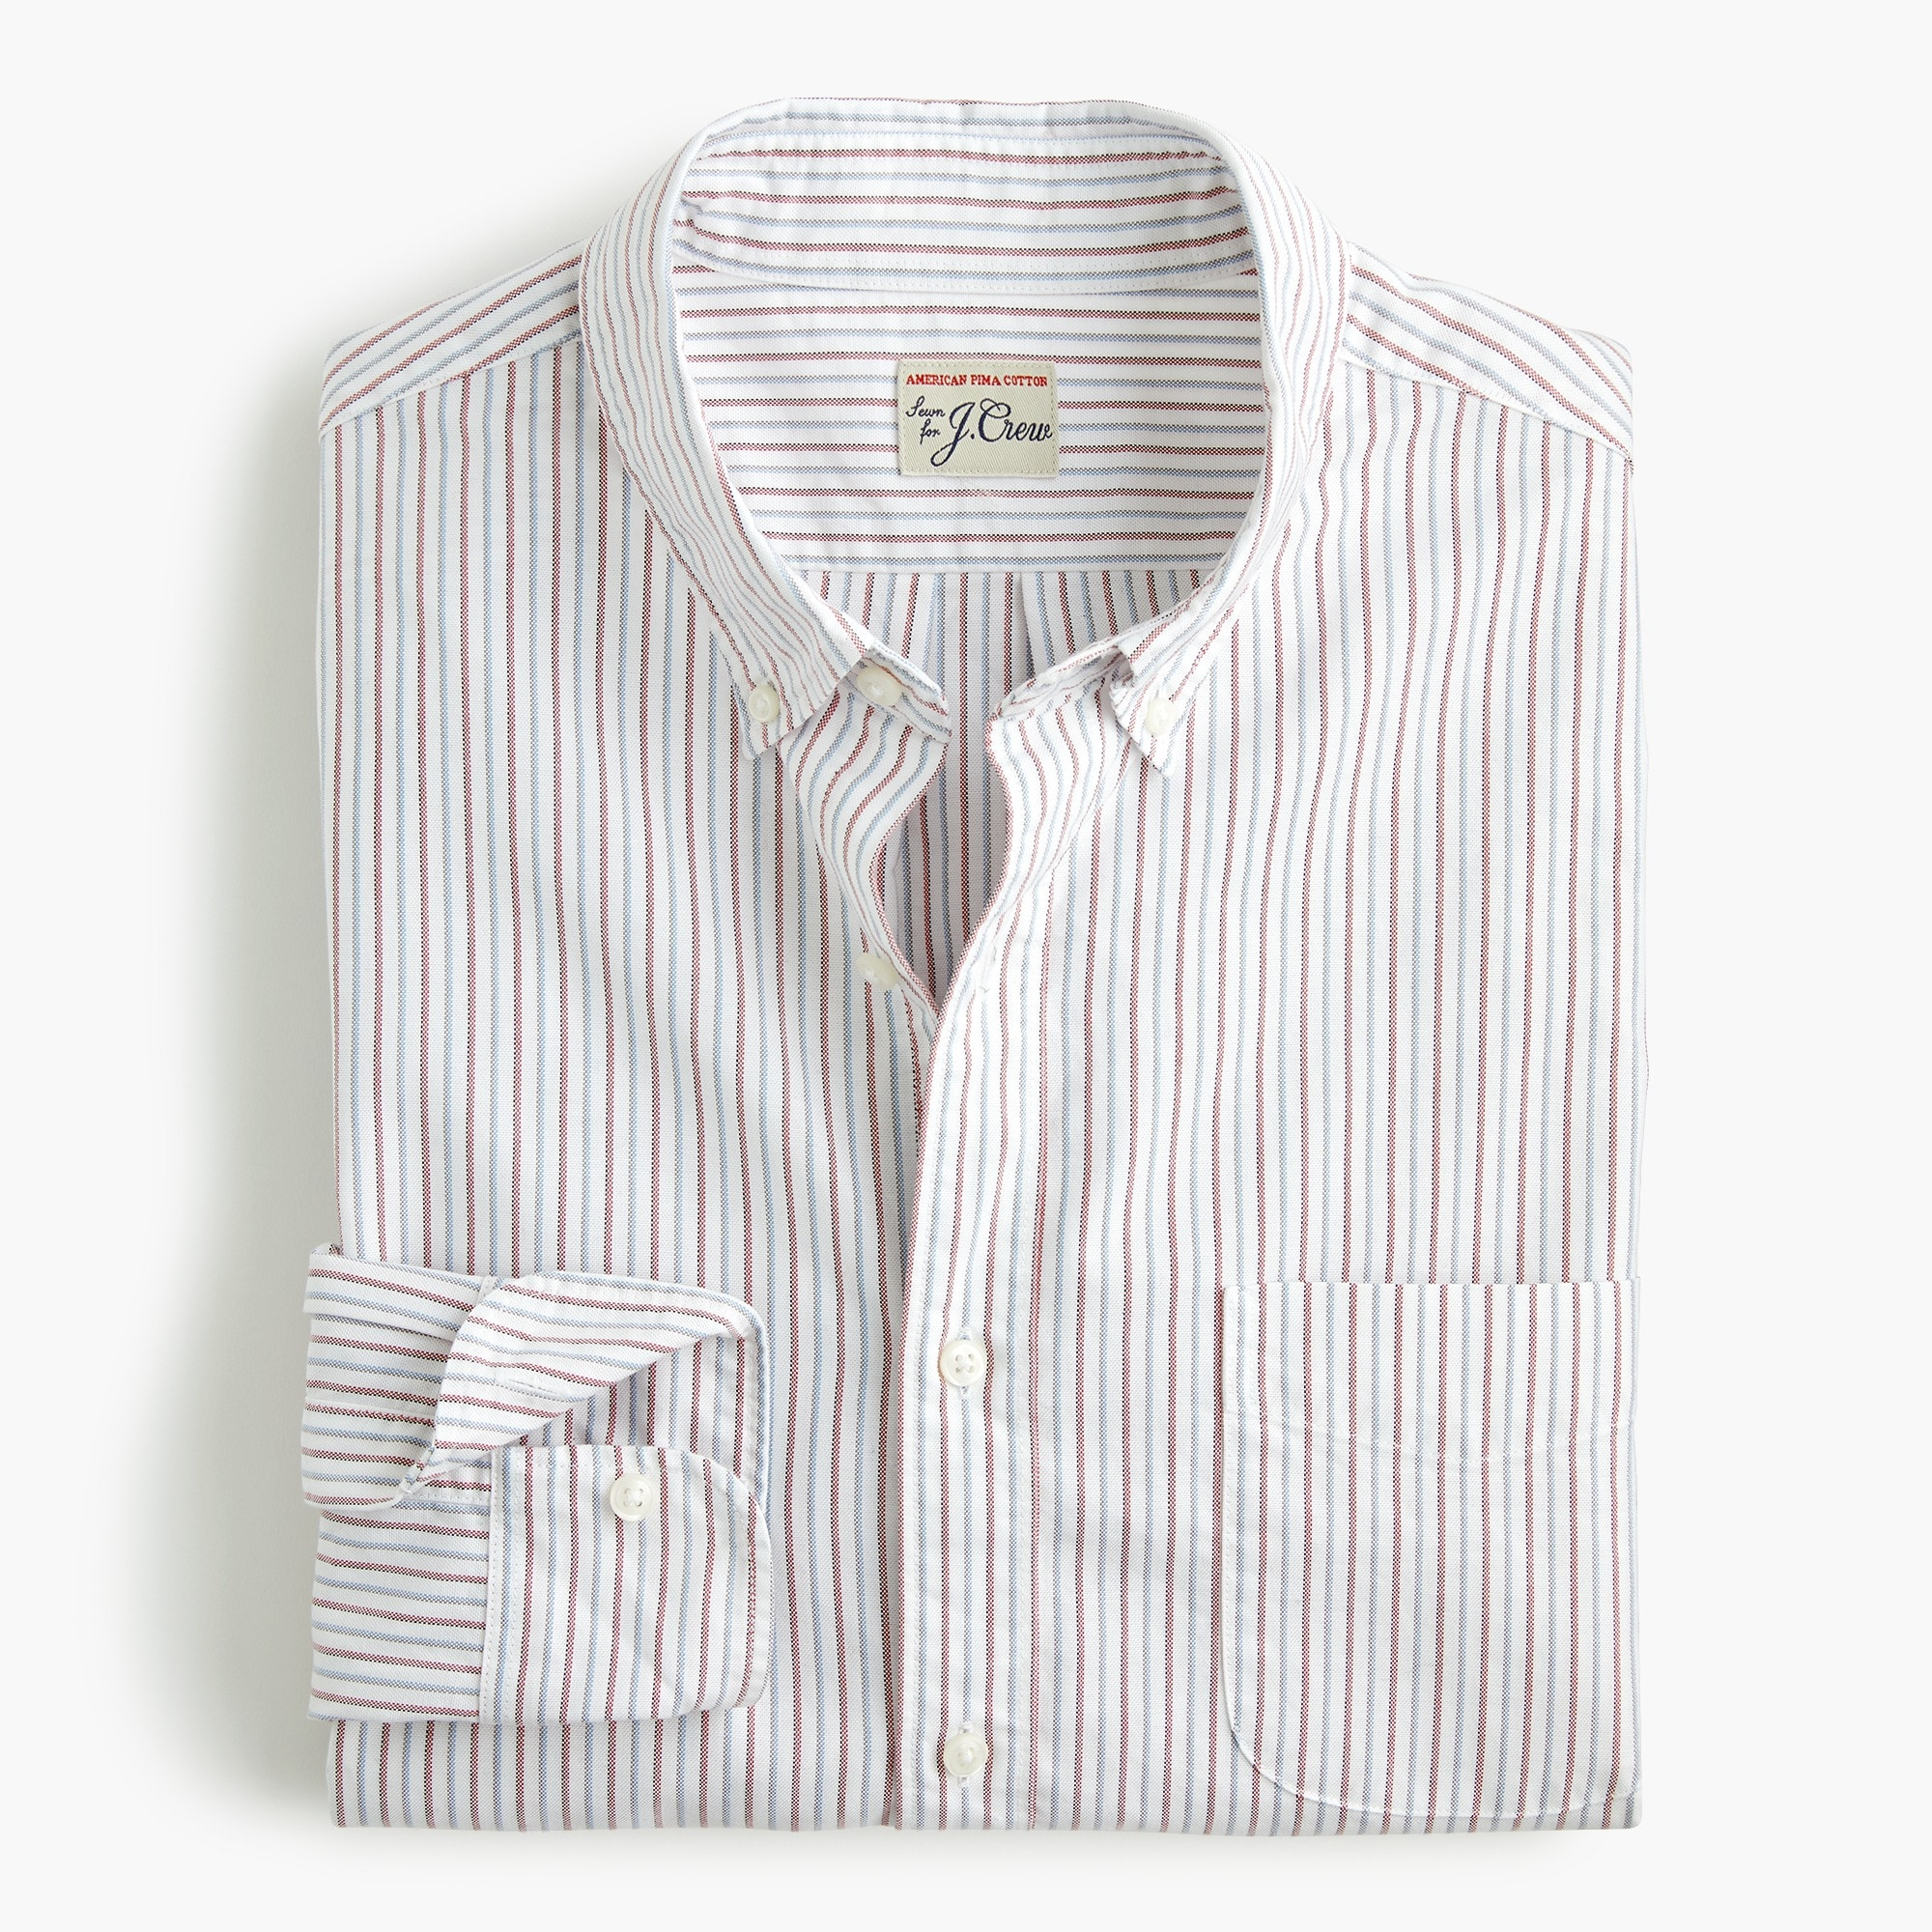 mens Slim American Pima cotton oxford shirt with mechanical stretch in multistripe